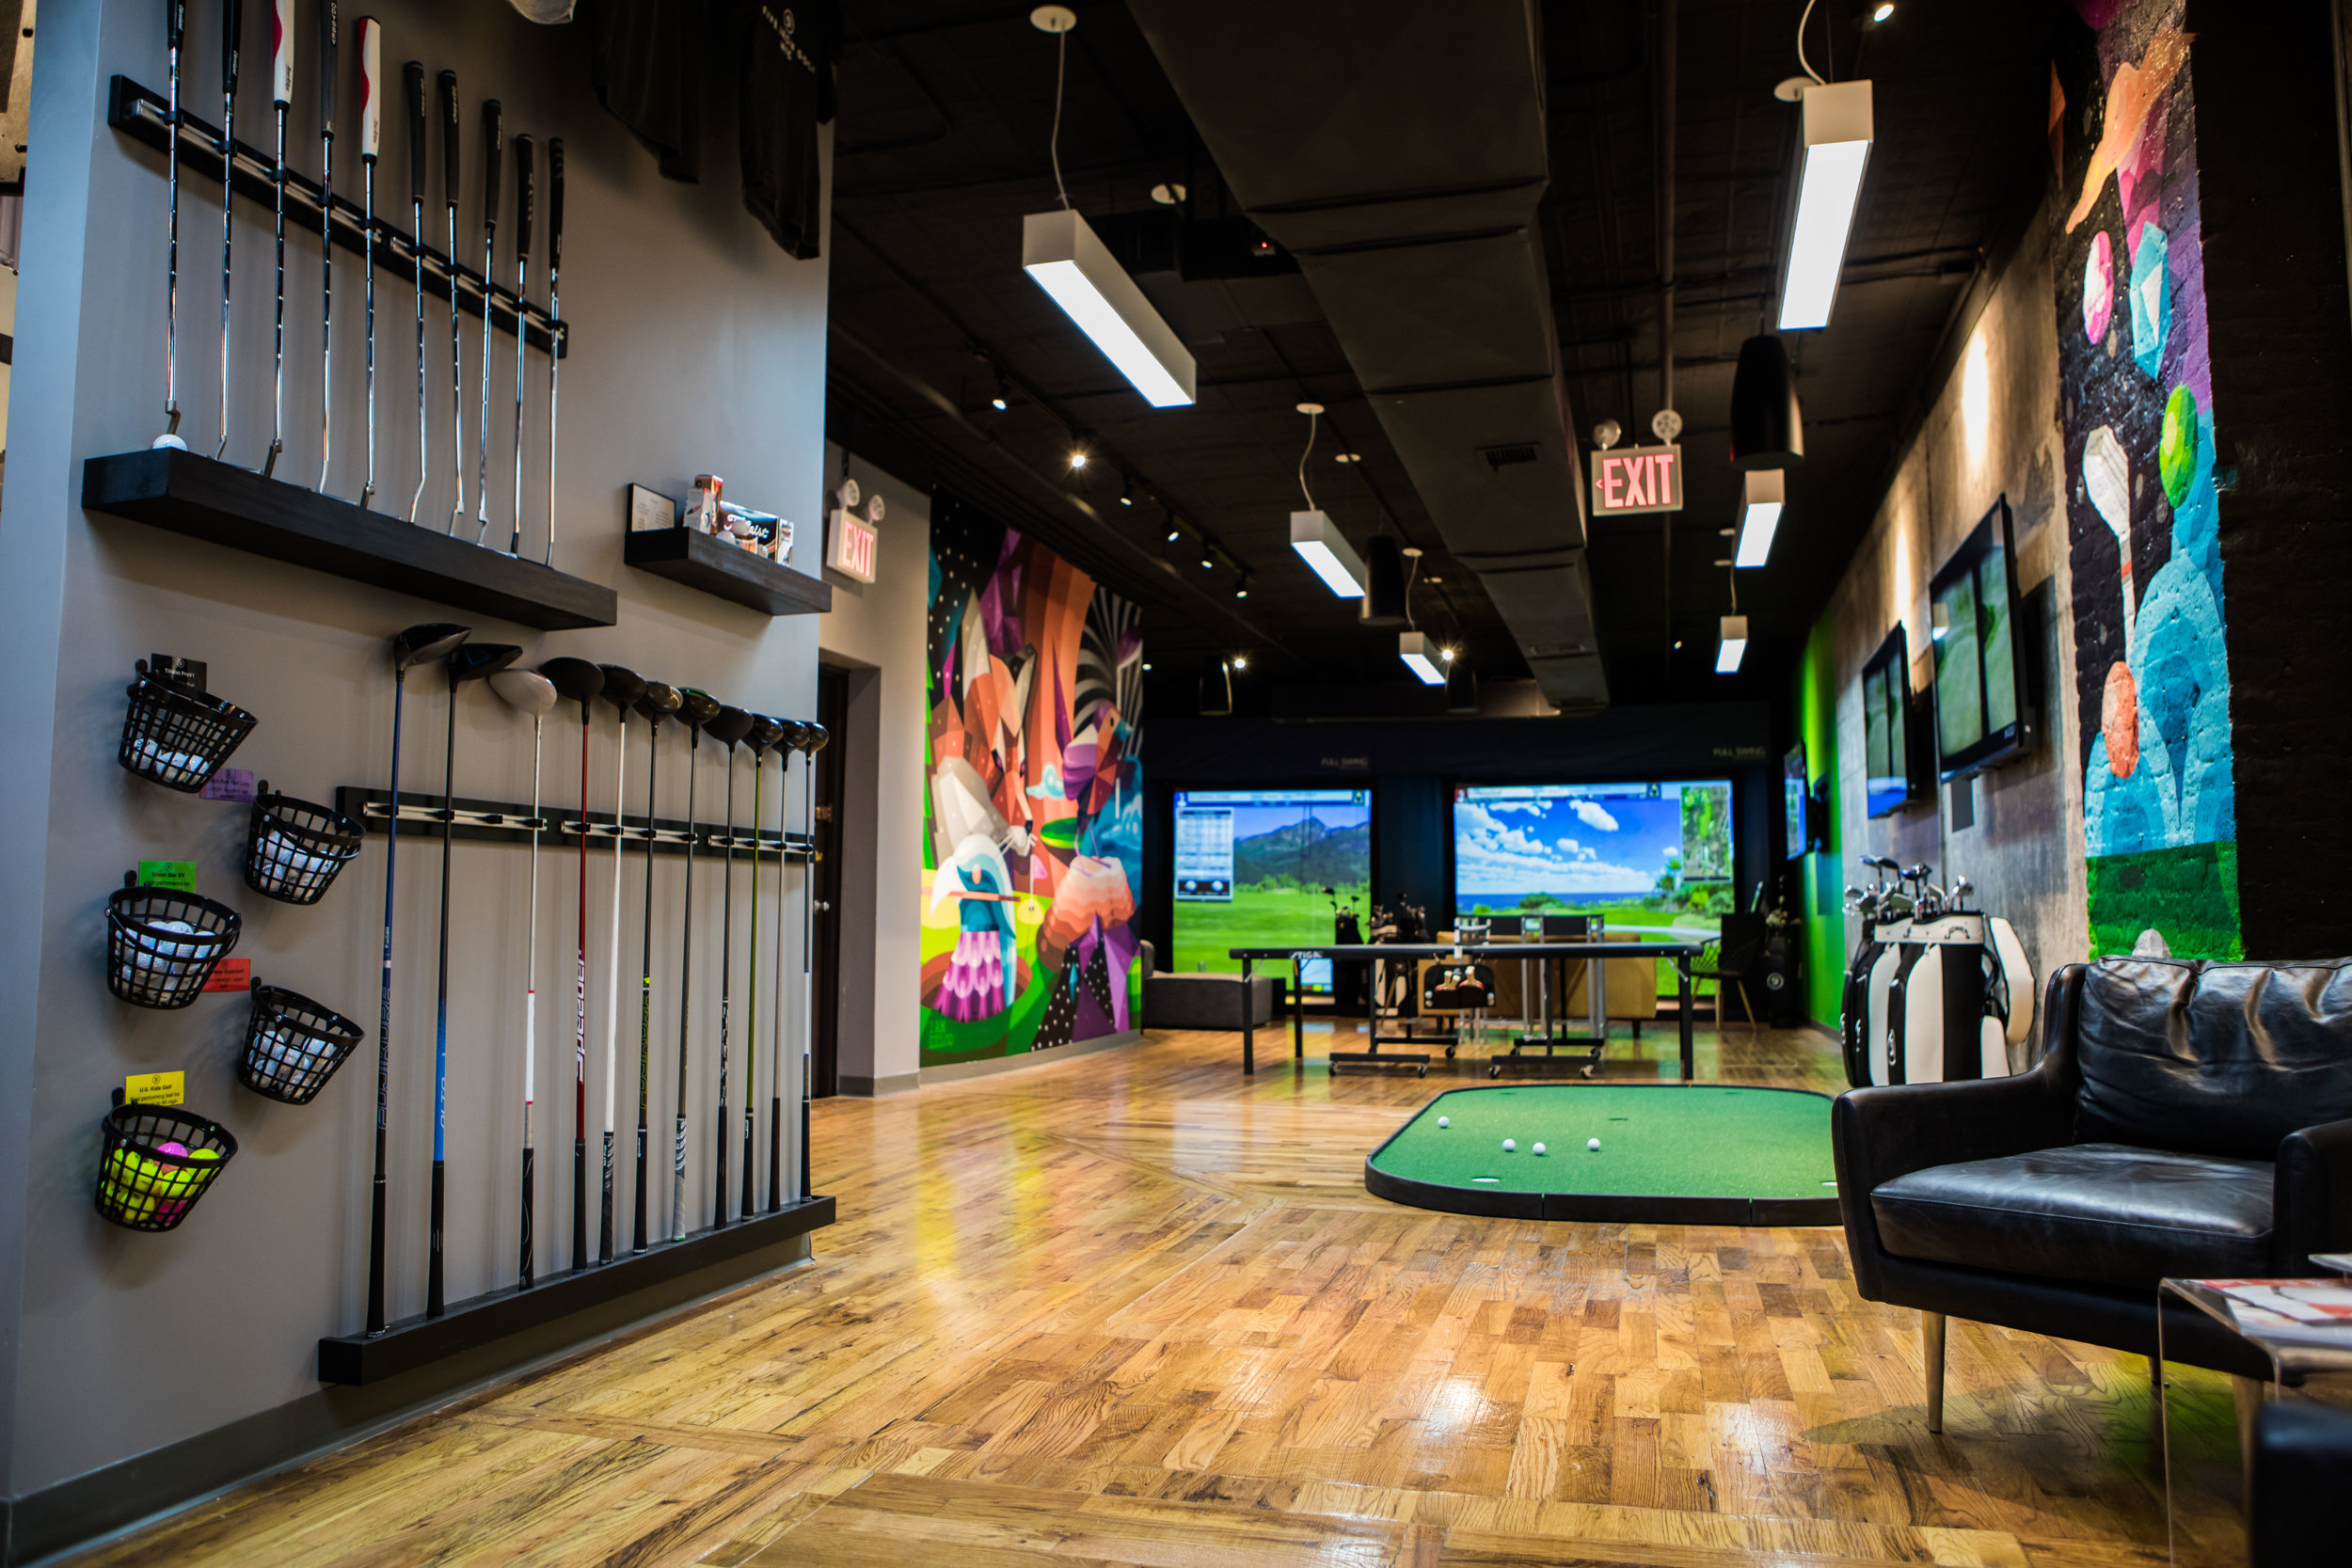 Five Iron Golf event space in New York City, NYC, NY/NJ Area